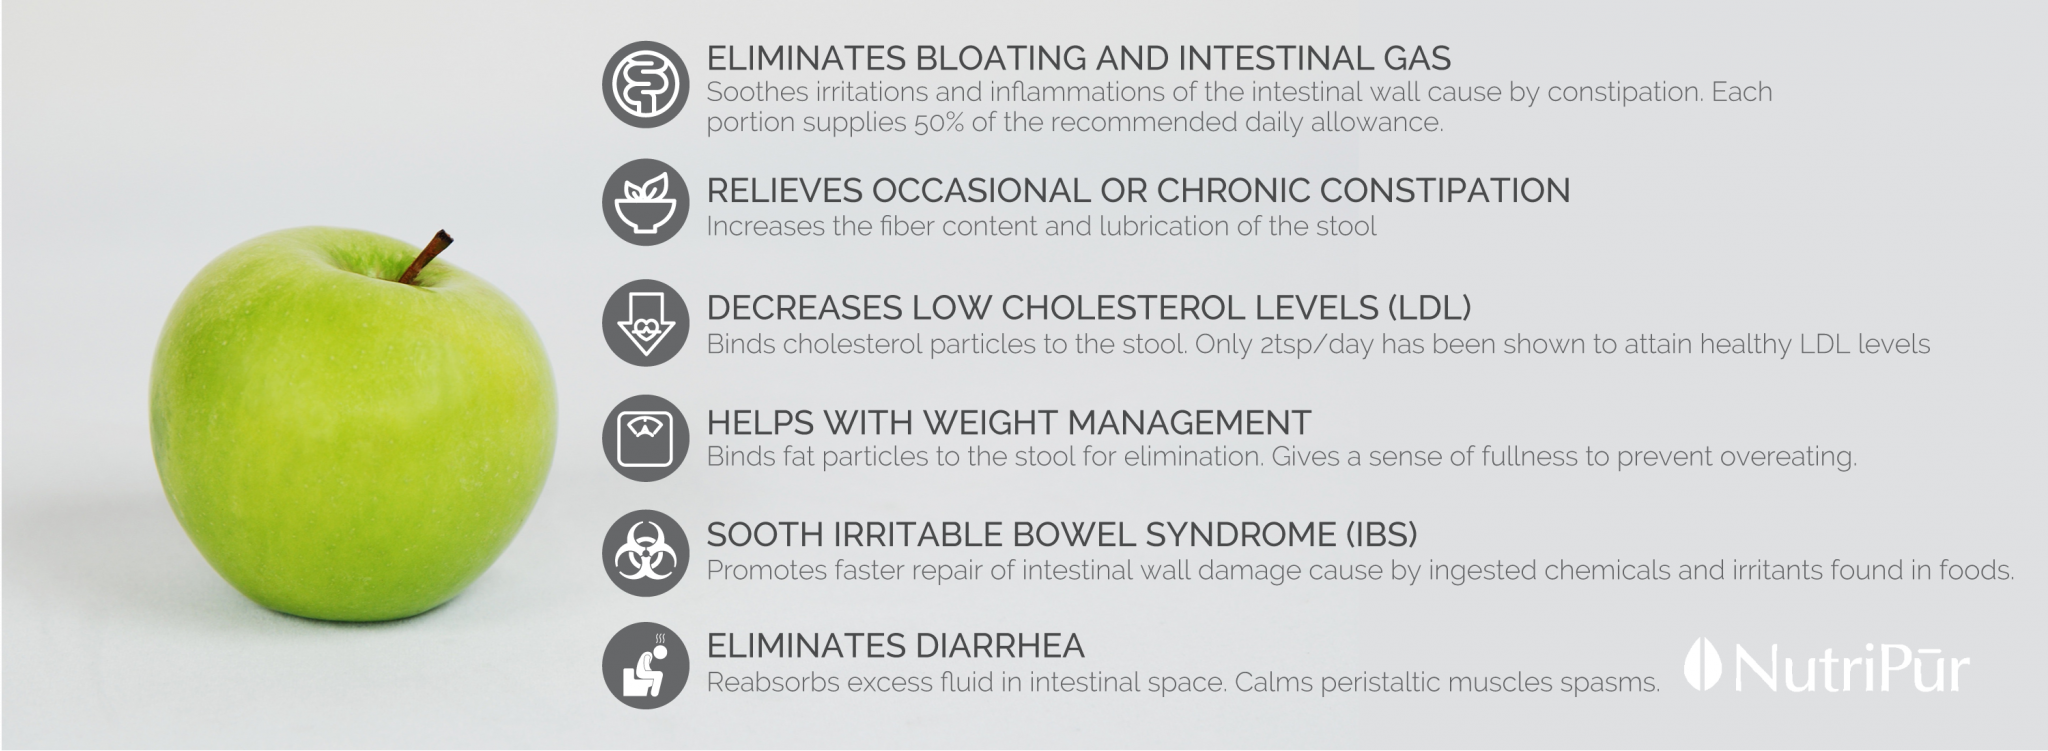 Intesfib - weight loss, cholesterol, constipation, bloating, IBS, diarrhea